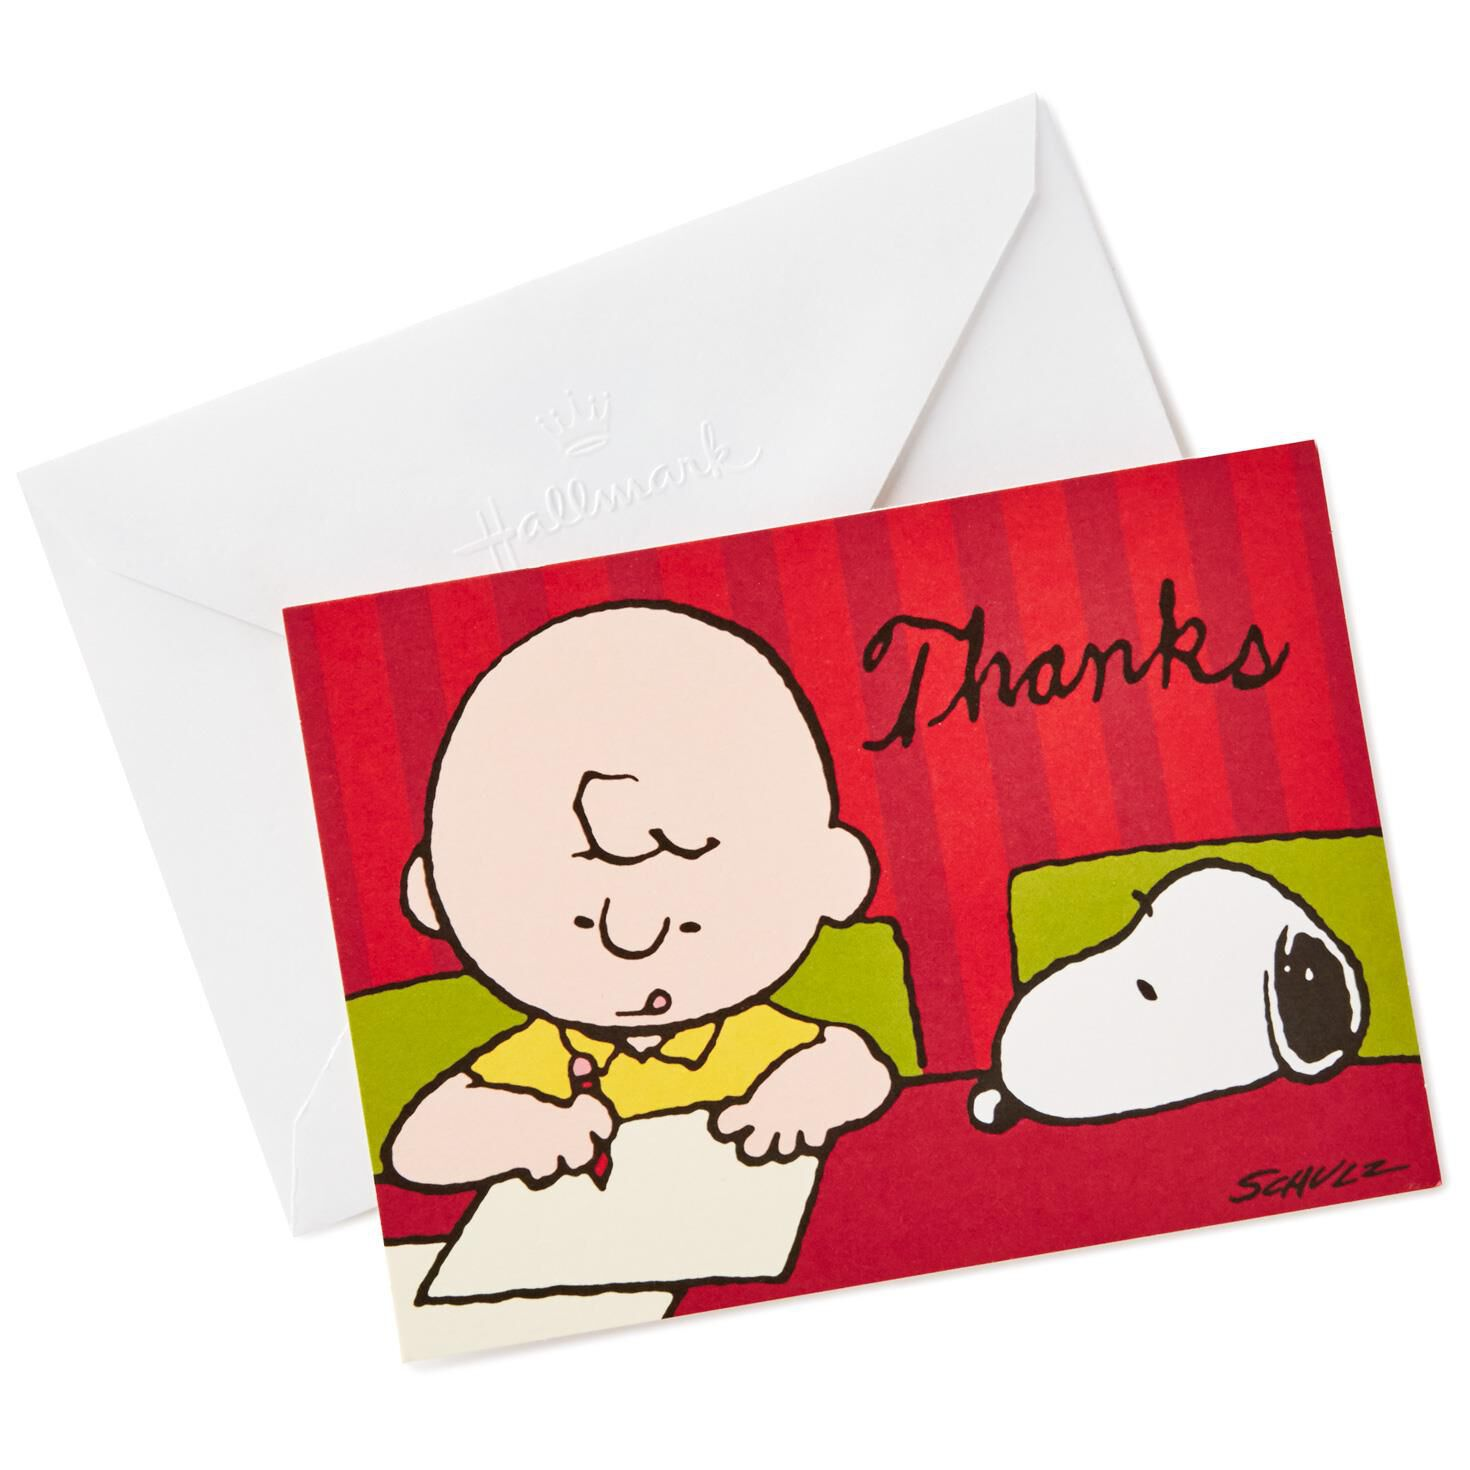 Peanuts charlie brown and snoopy blank thank you notes pack of peanuts charlie brown and snoopy blank thank you notes pack of 10 note cards hallmark kristyandbryce Image collections